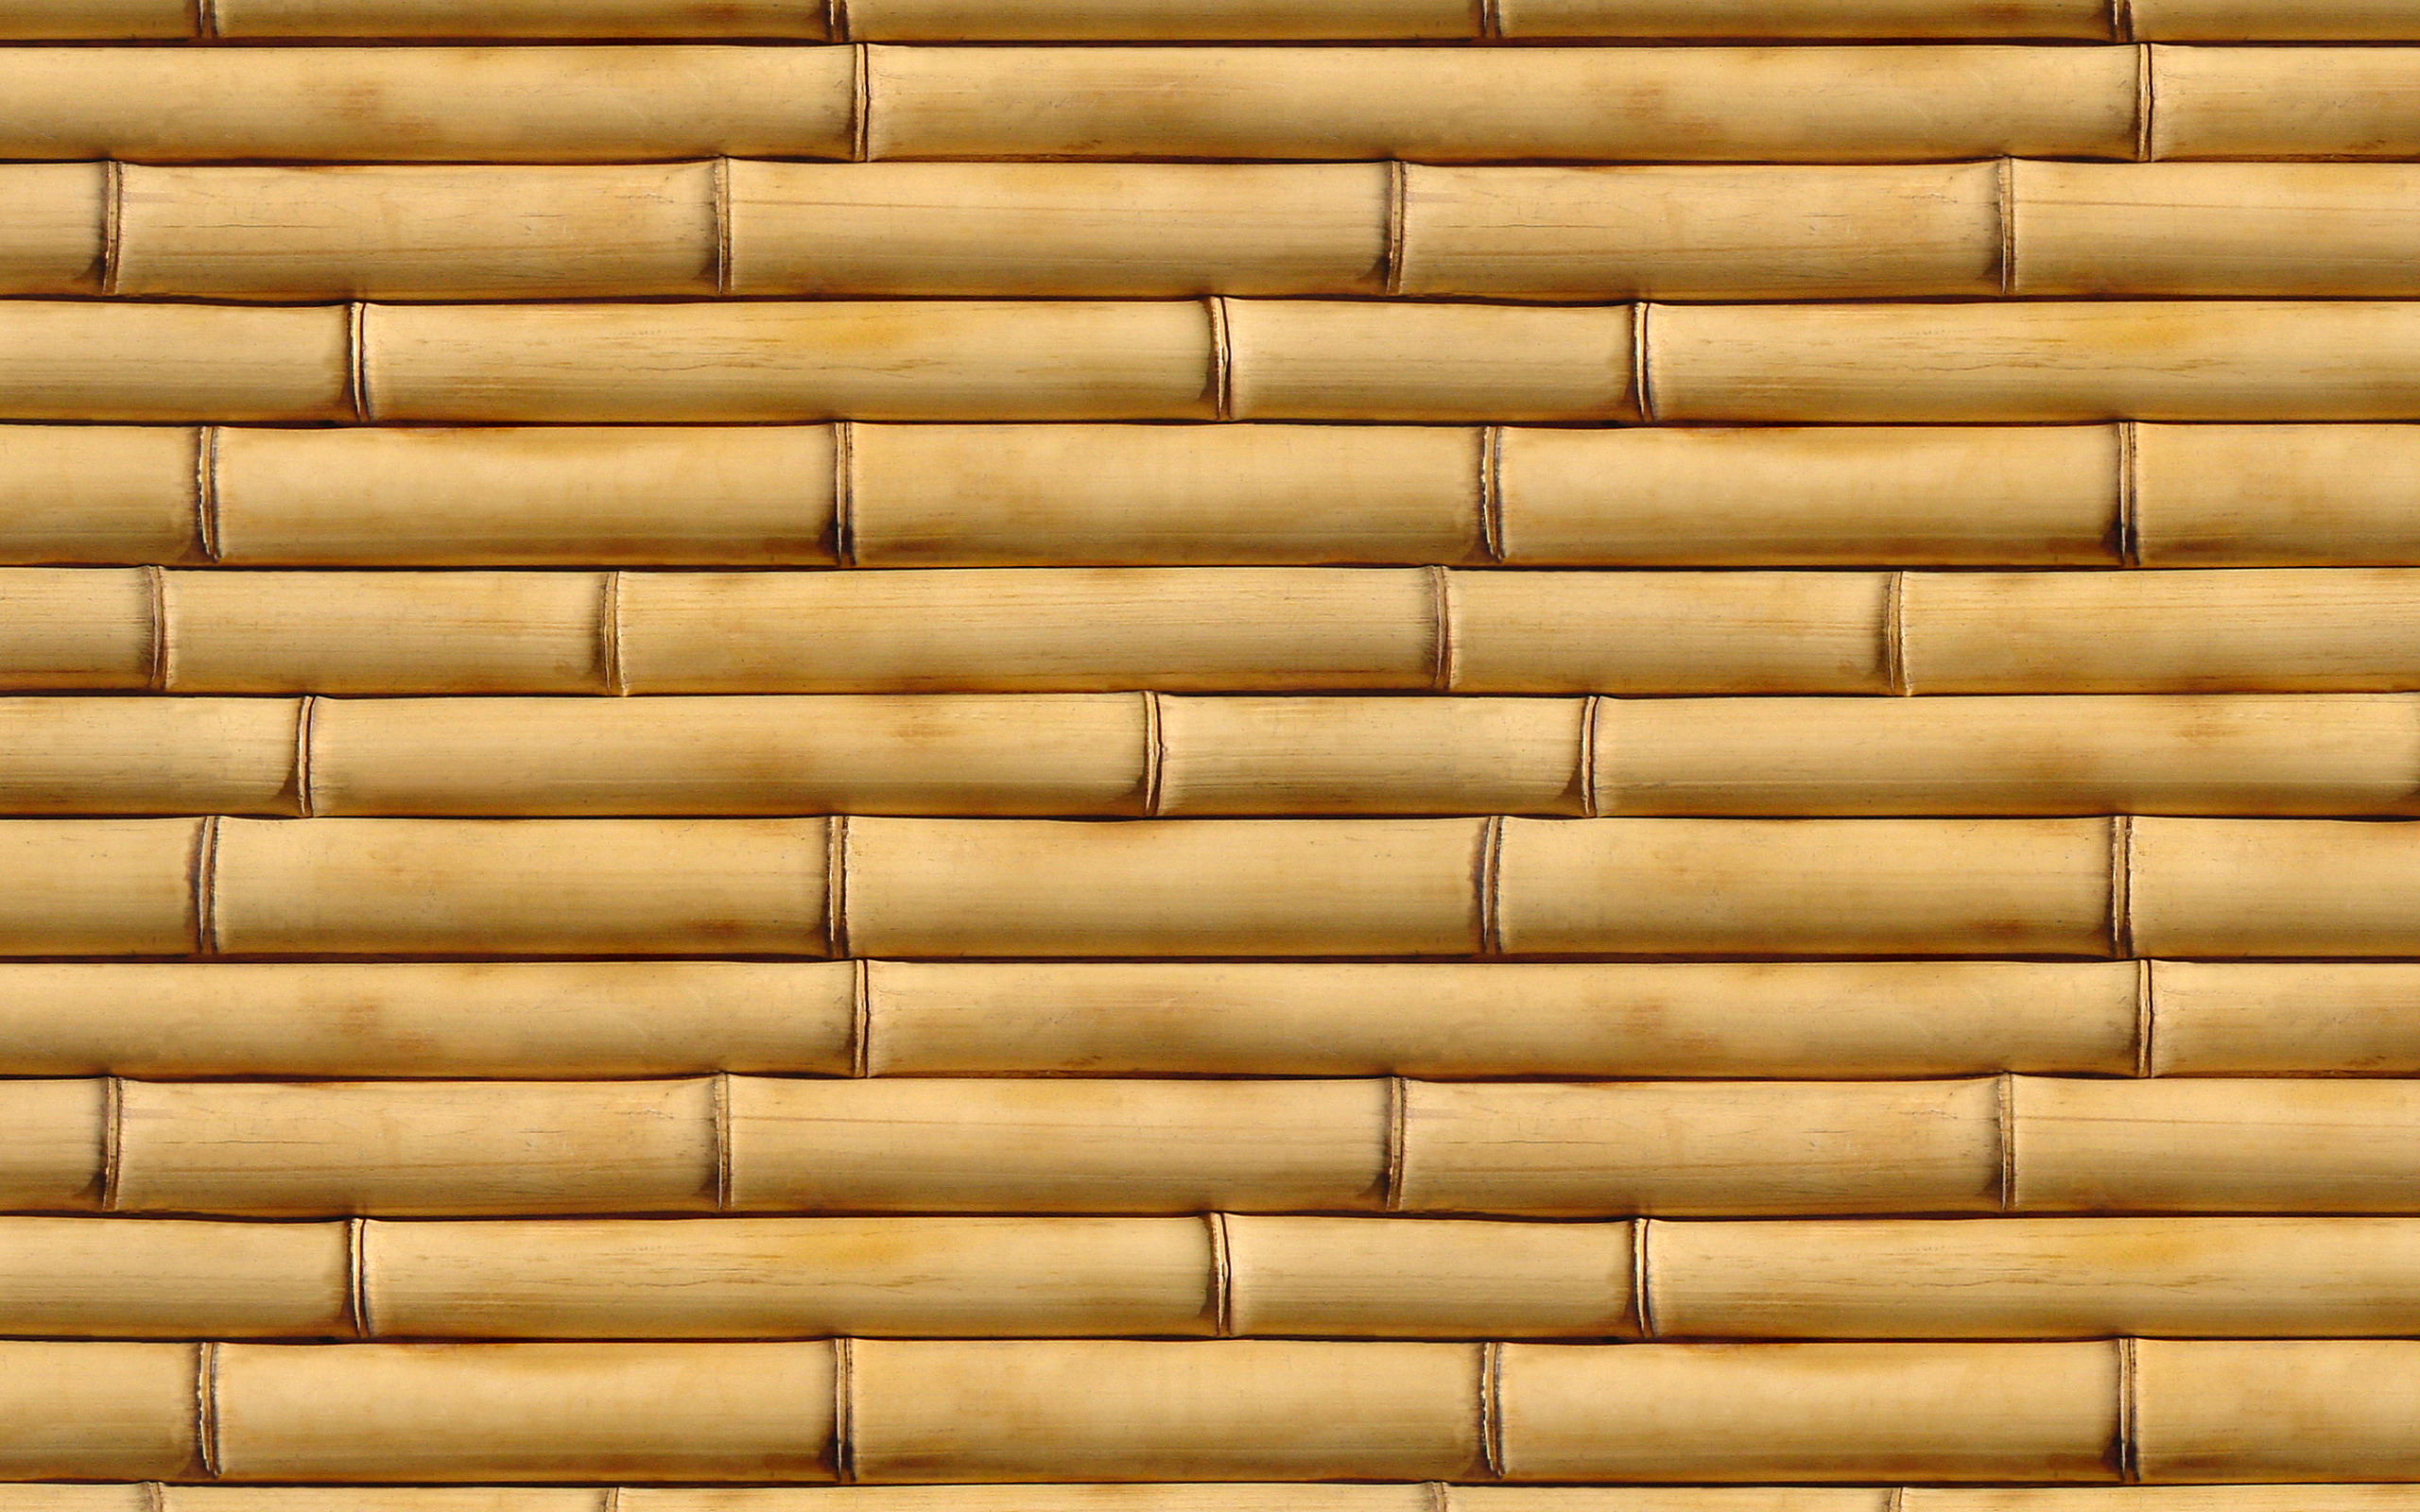 bamboo, texture bambooа, bamboo texture, photo, background